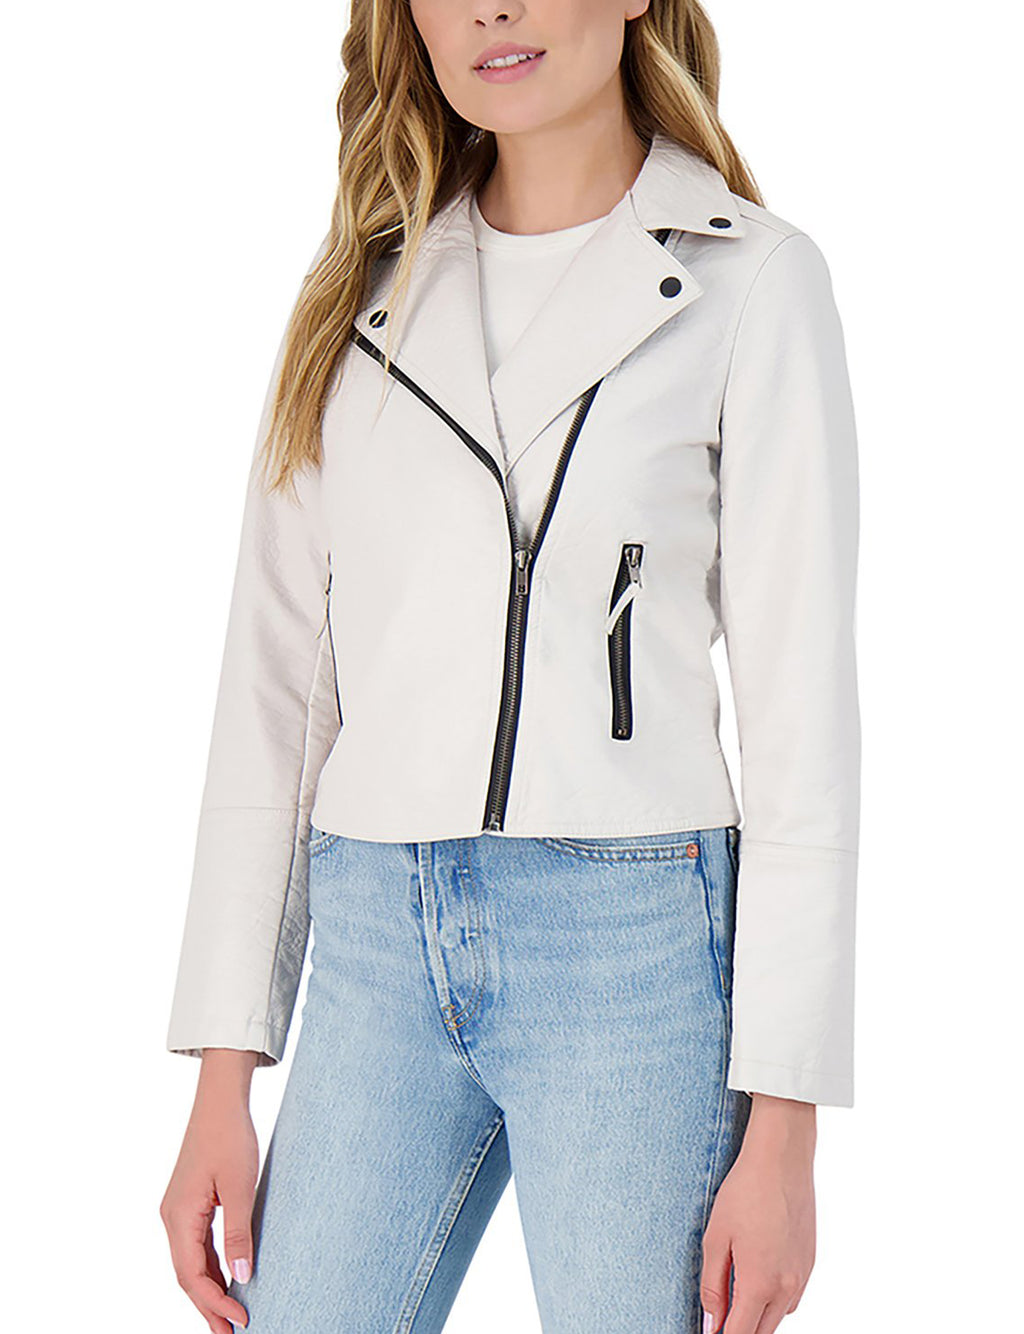 BB Dakota London Calling Moto Jacket in Bone